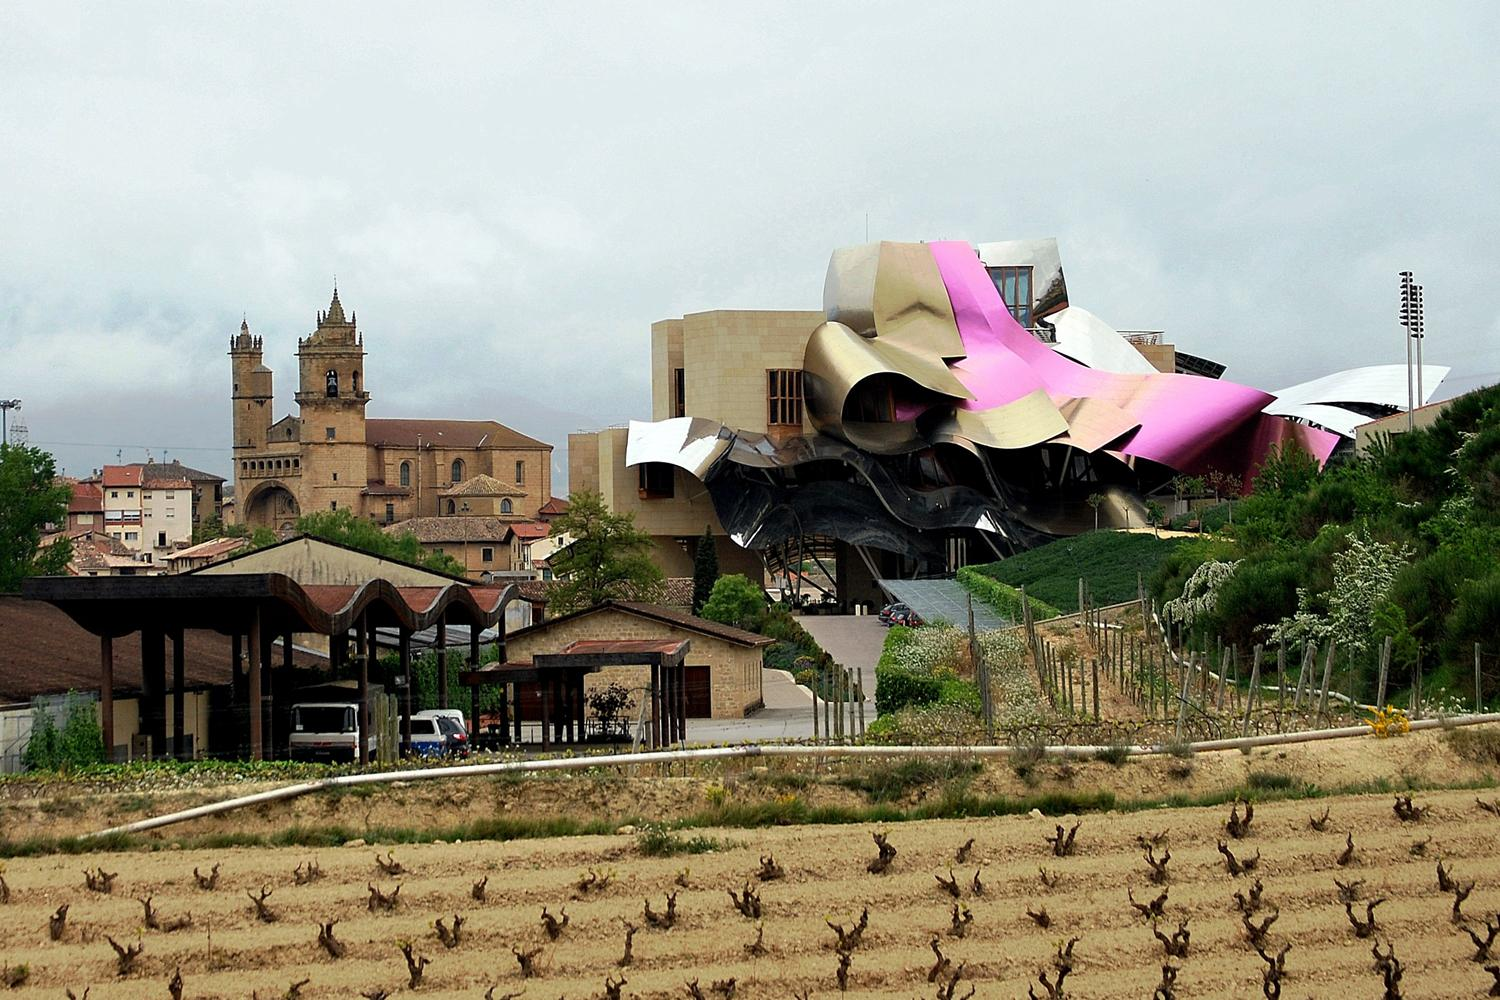 Frank gehry a f a s i a for Bodegas marques de riscal